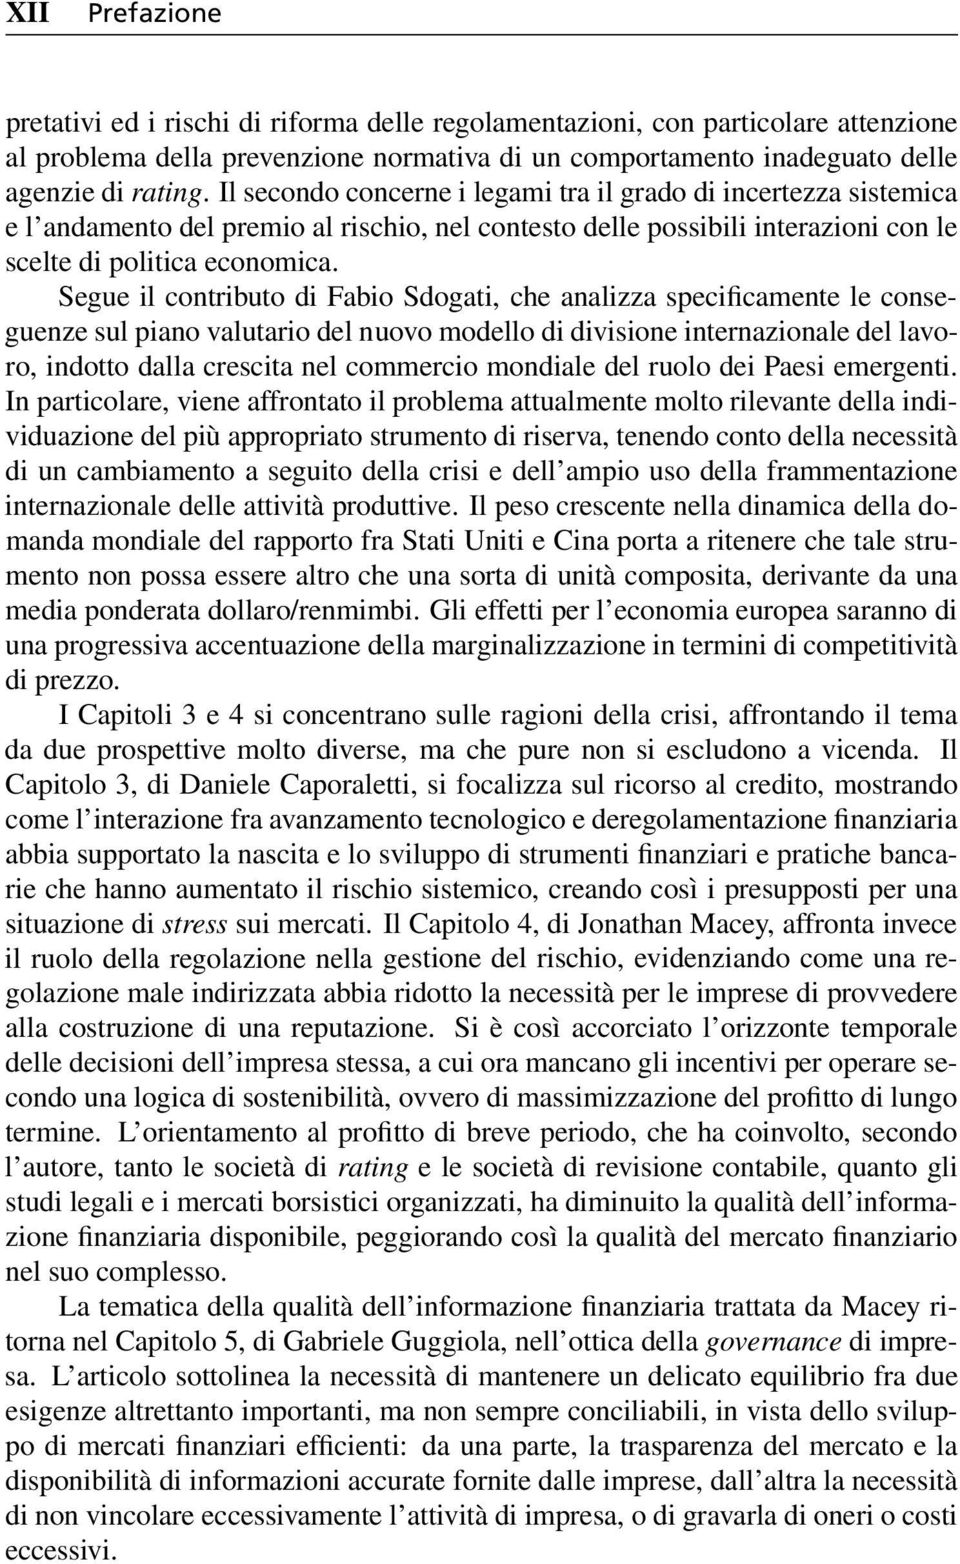 Segue il contributo di Fabio Sdogati, che analizza specificamente le conseguenze sul piano valutario del nuovo modello di divisione internazionale del lavoro, indotto dalla crescita nel commercio